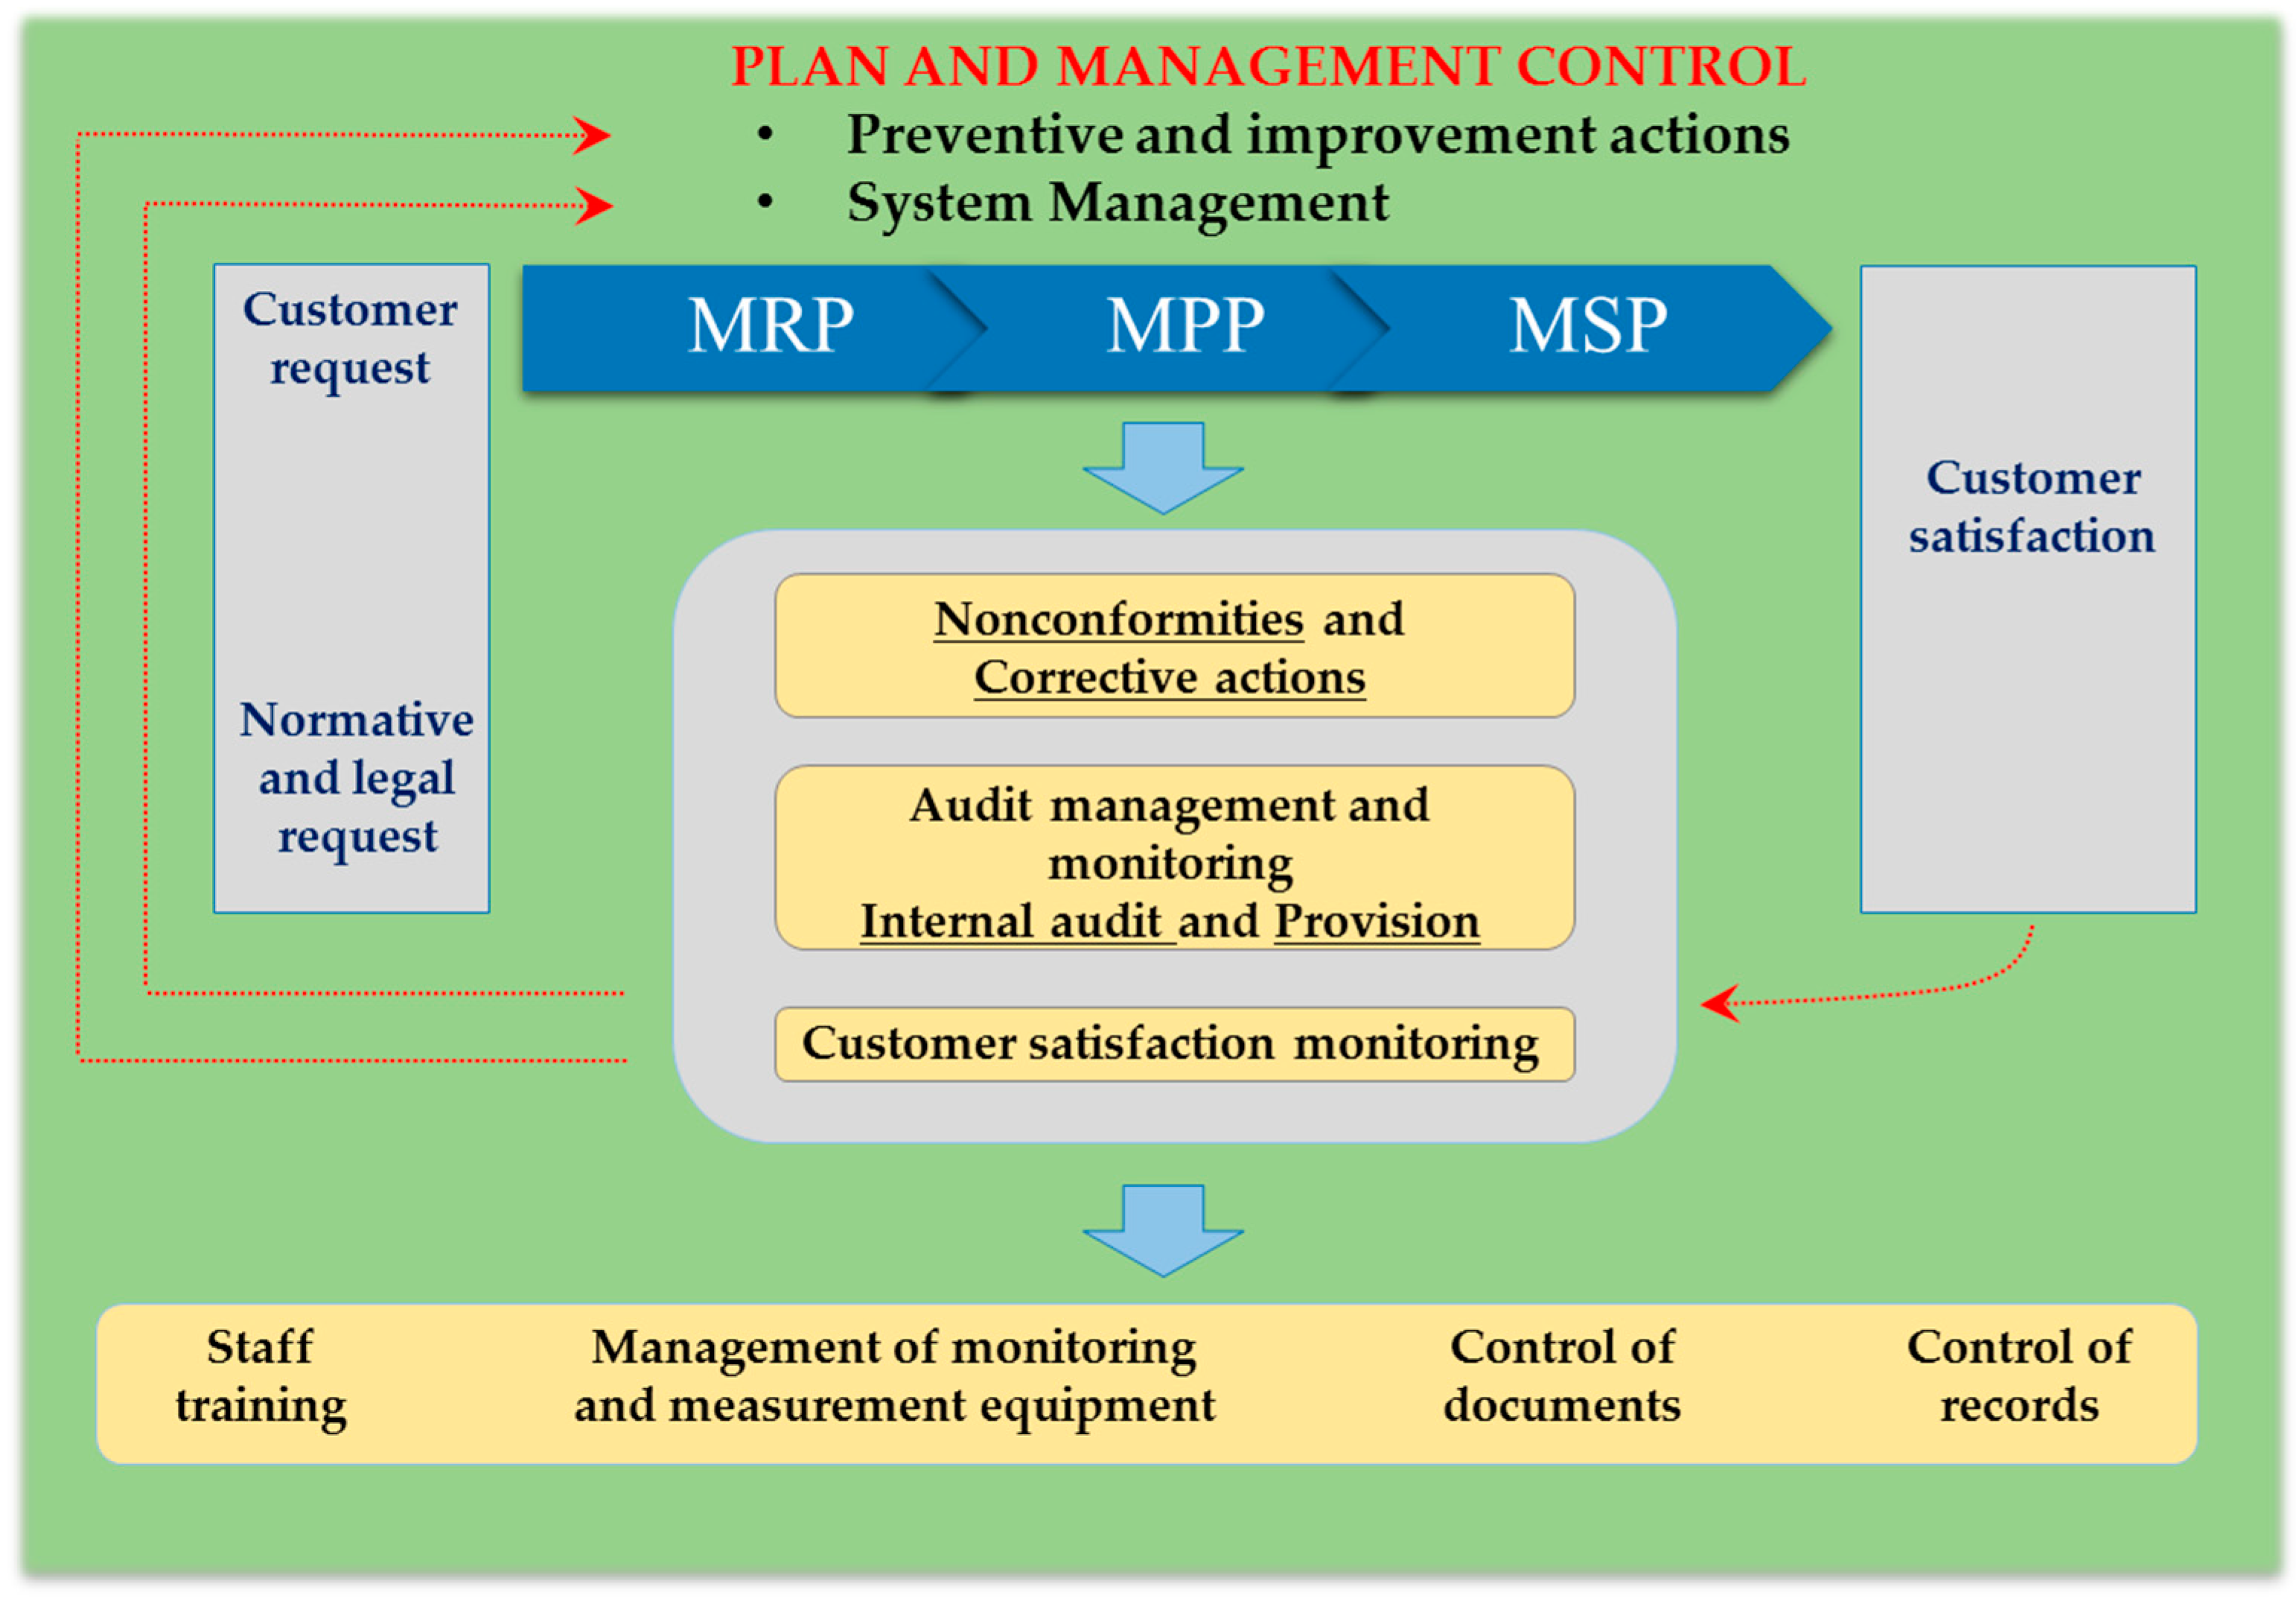 iso 9001 2008 a quality management system To improve consistency with iso 14001:2004 there were no new requirements  for example, in iso 9001:2008, a quality management system.